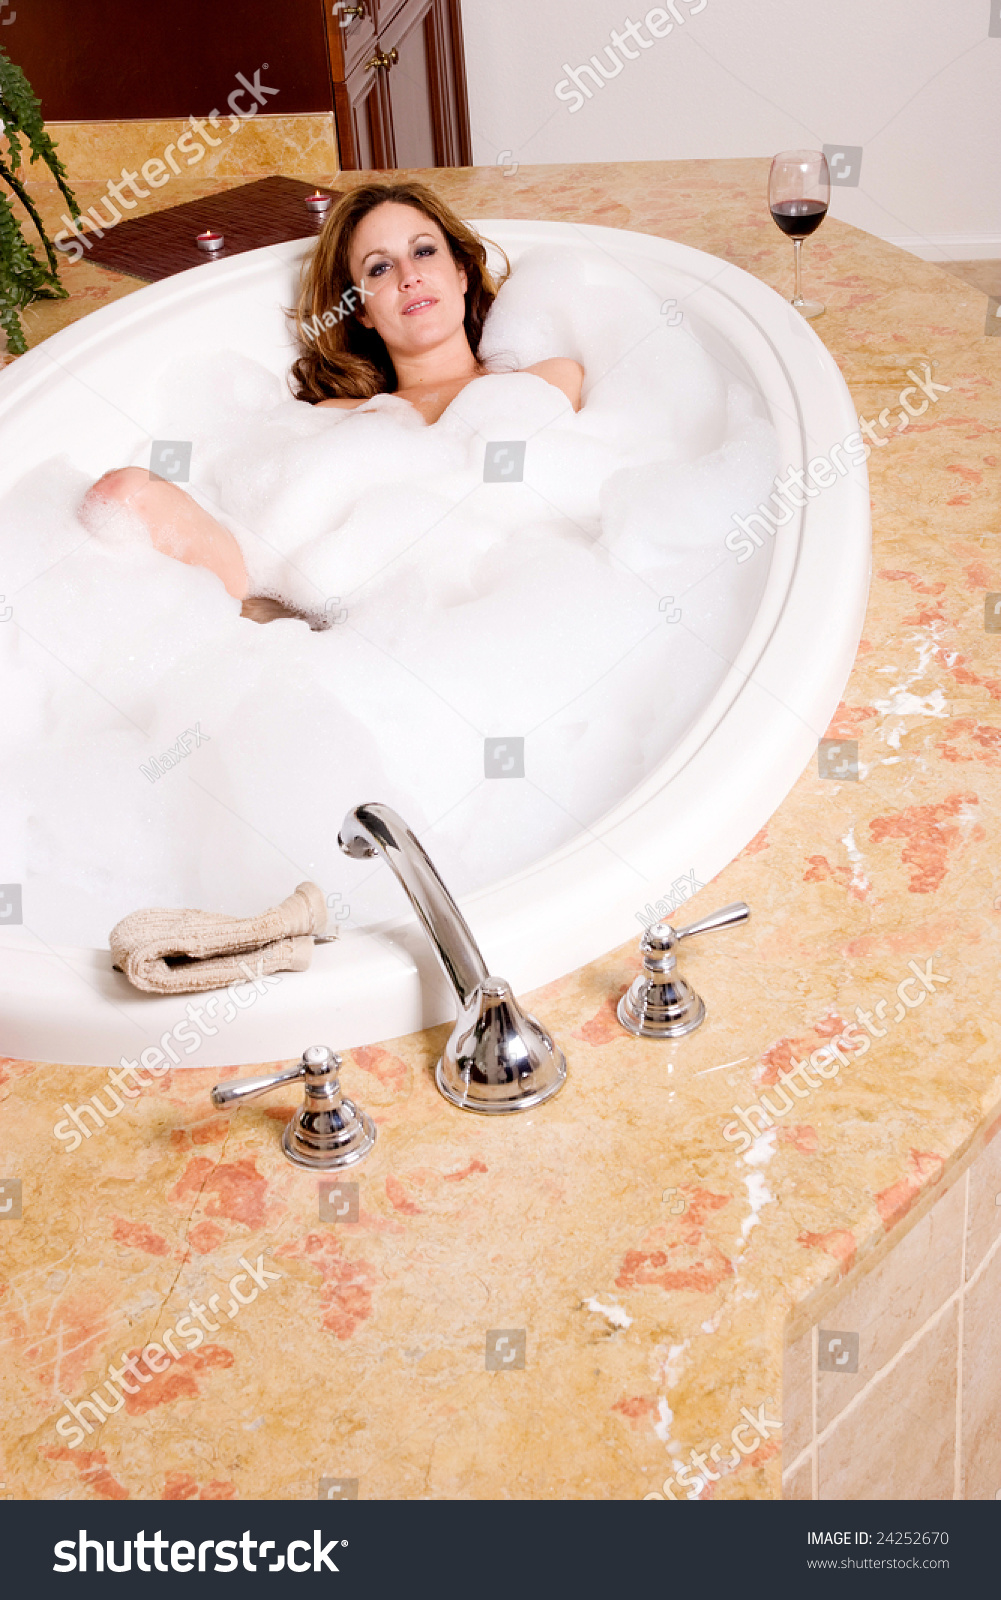 Sexy woman taking a bath